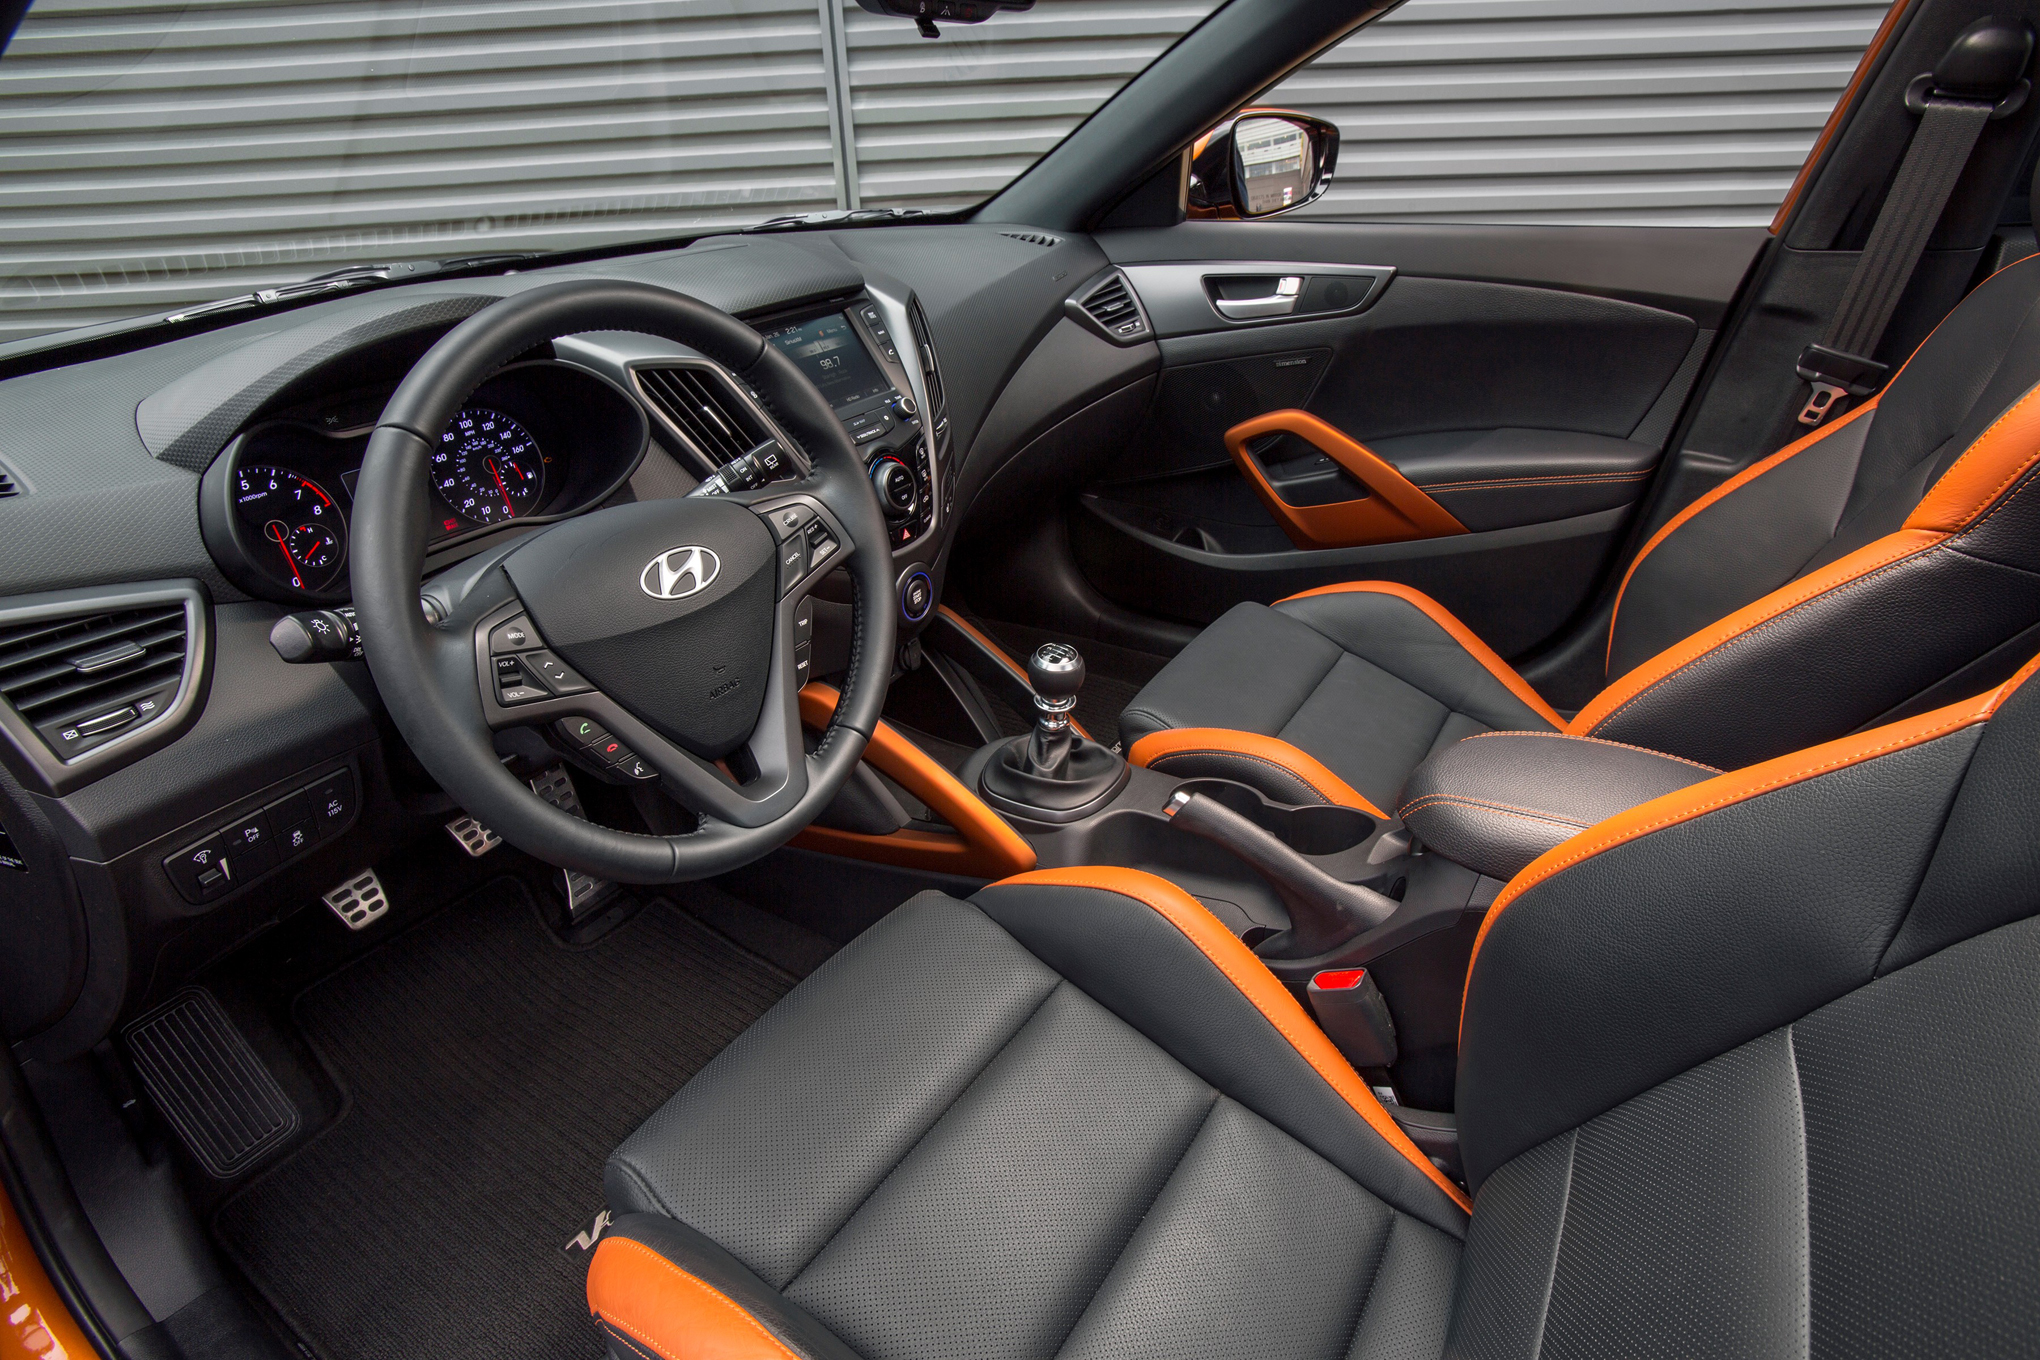 2016 Hyundai Veloster Turbo Unveiled In Chicago With New 7 Speed Dct